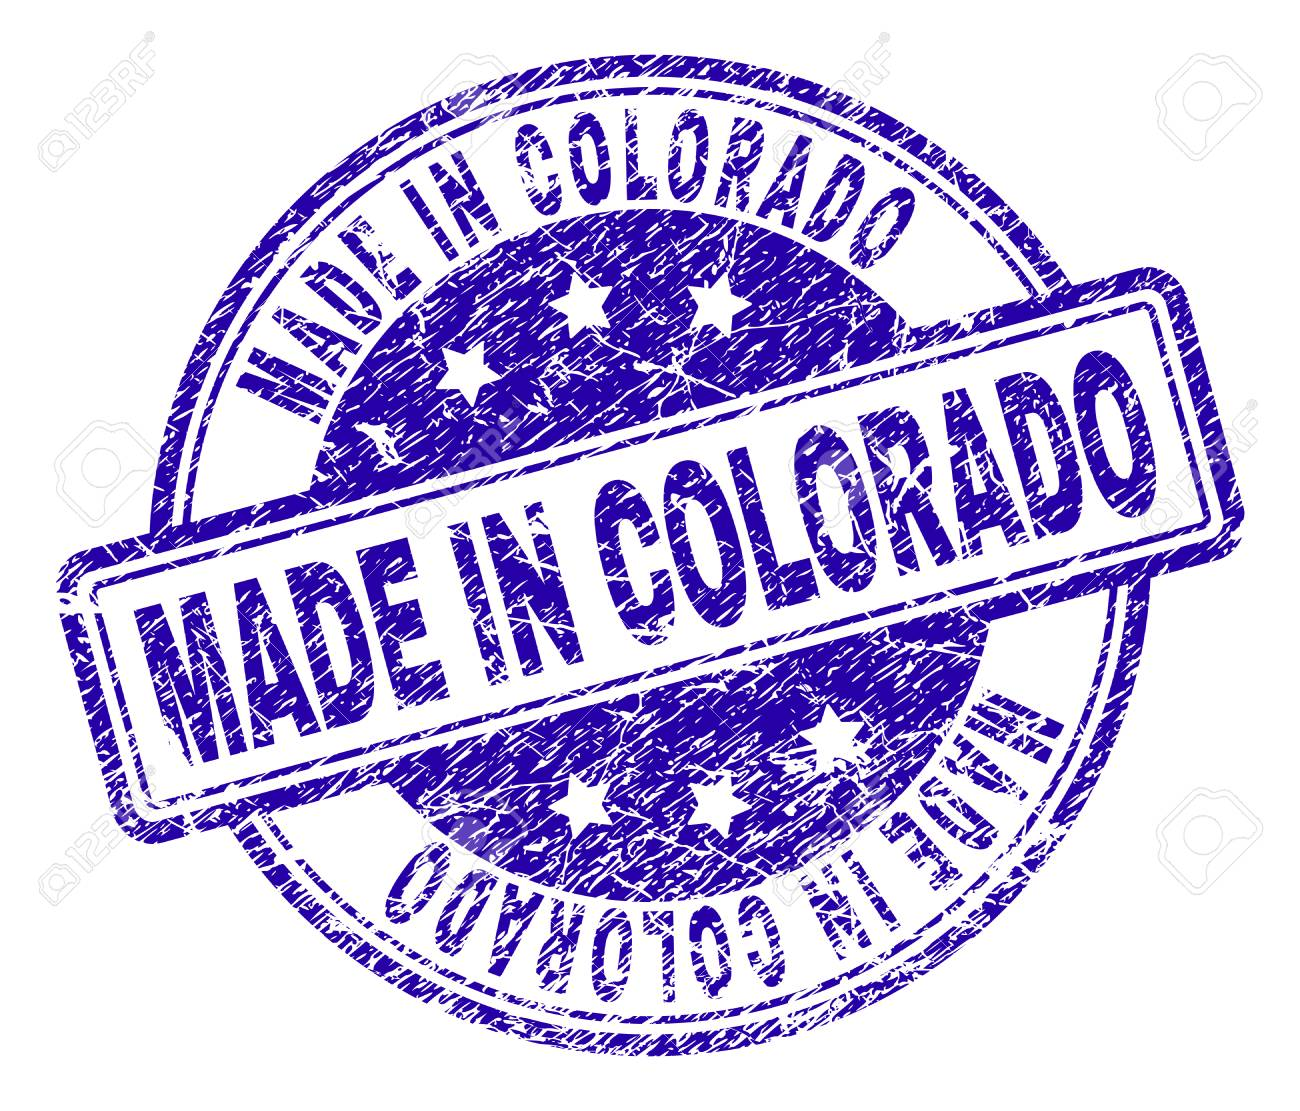 MADE IN COLORADO Stamp Seal Watermark With Grunge Style Designed Rounded Rectangles And Circles